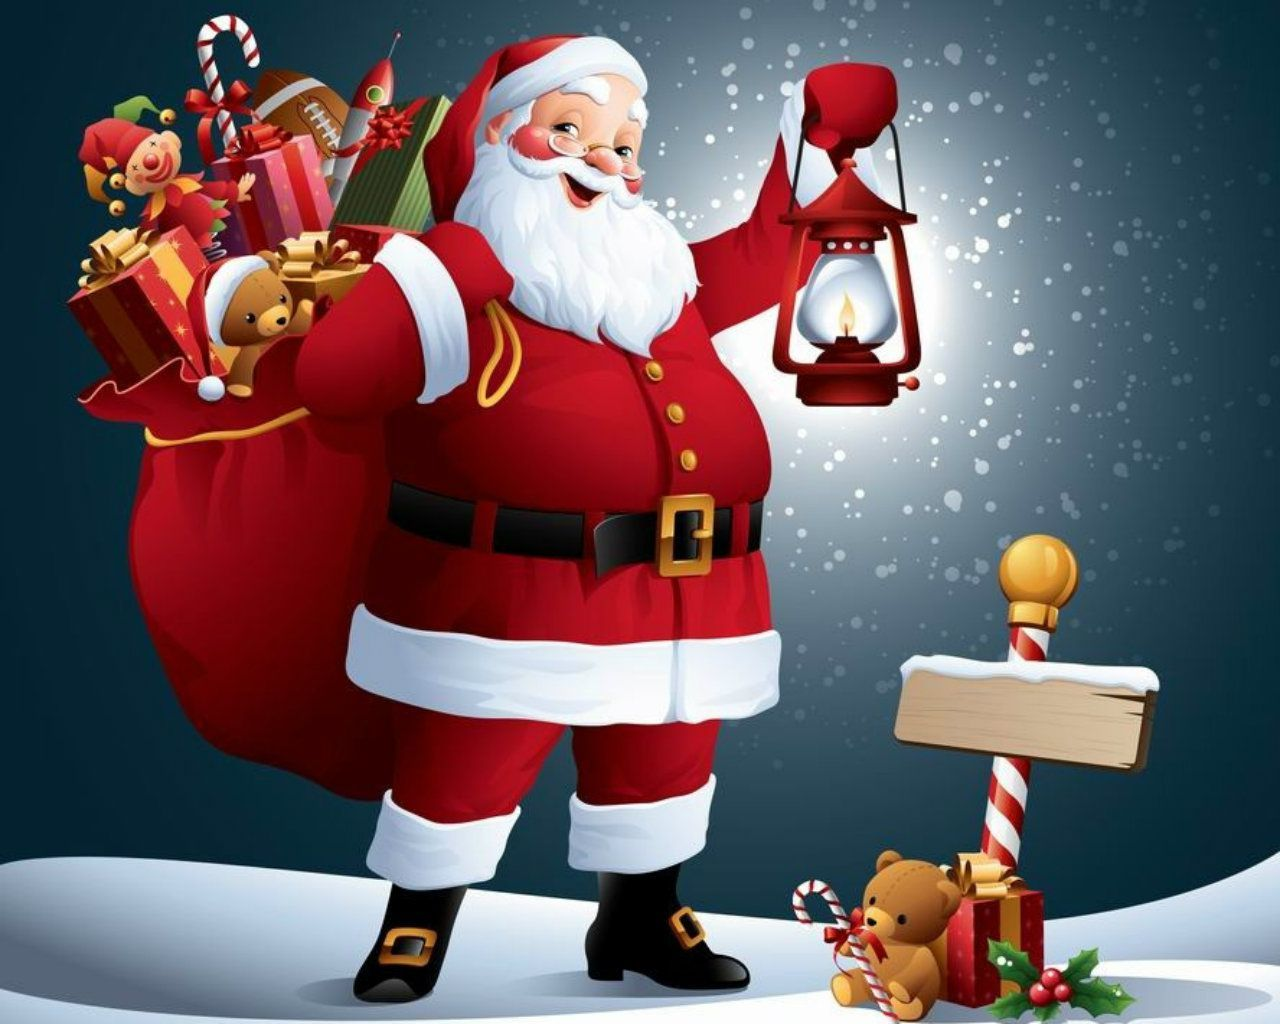 Animated Santa Claus Images Free Merry Christmas Navidad